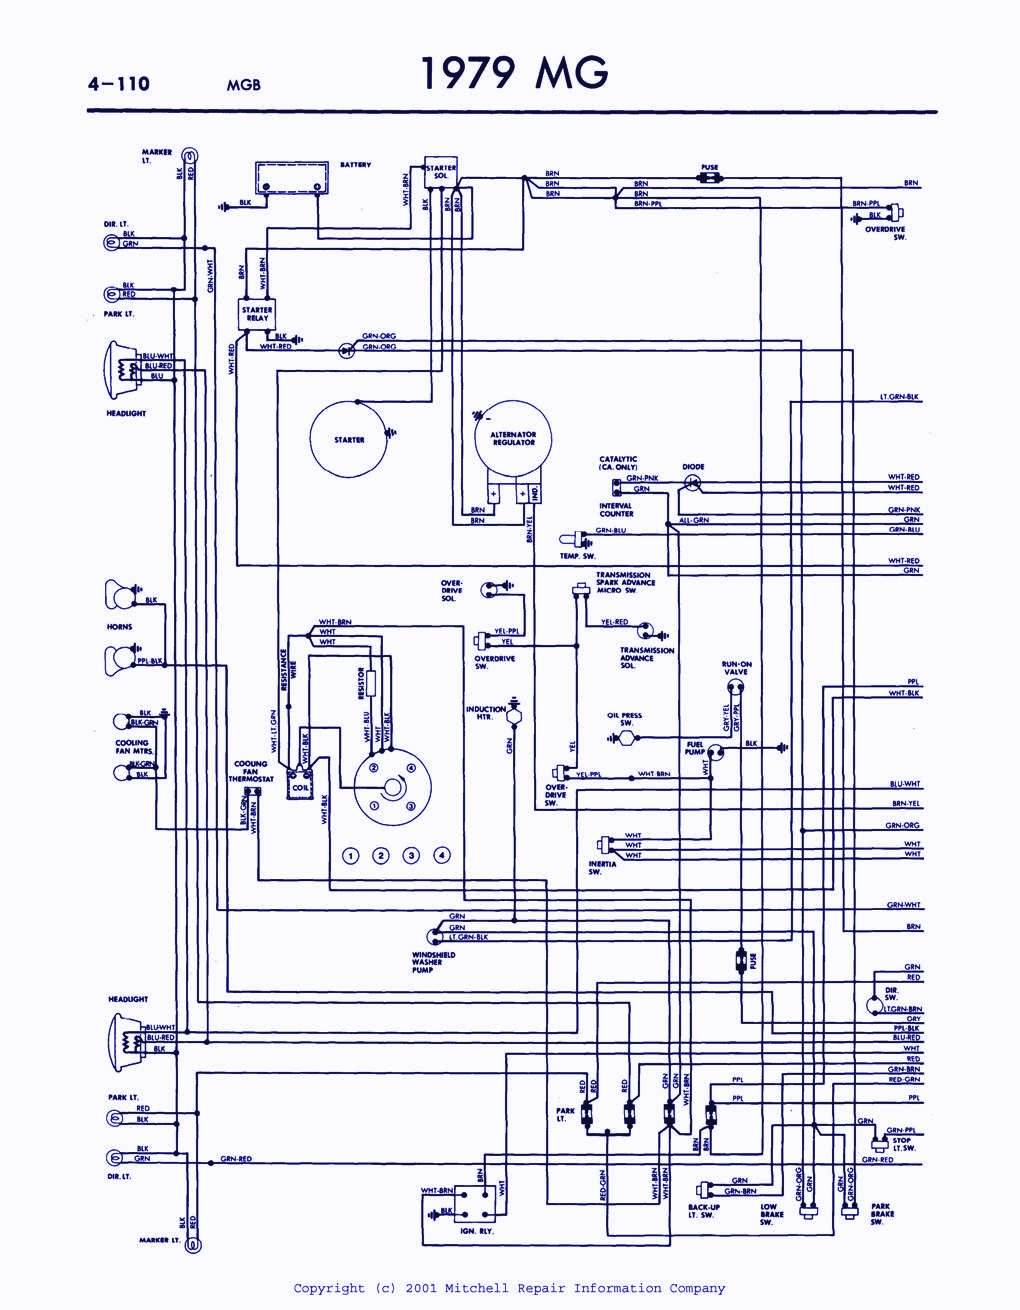 Wiring diagram alarm mobil avanza speaker cabinet wiring diagrams charming mgc wiring schematic images wiring diagram ideas 1979 mg mgb wiring diagram mgc wiring schematic wiring diagram alarm mobil avanza asfbconference2016 Image collections